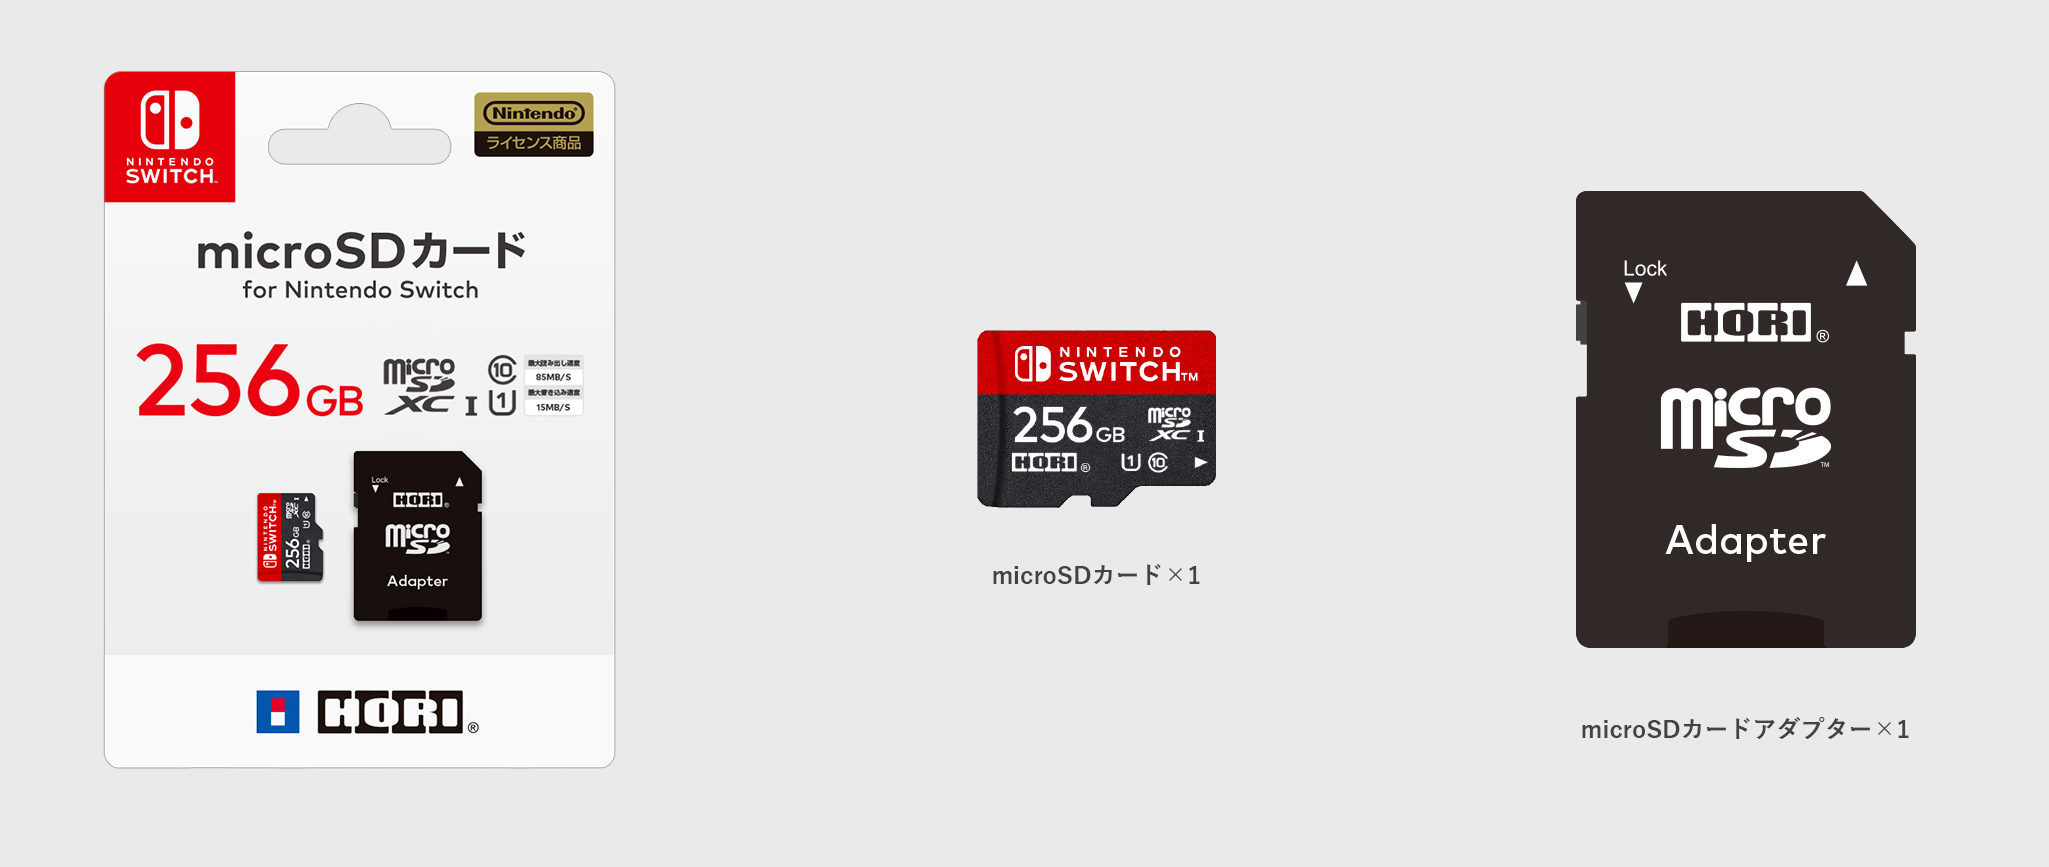 「microSDカード for Nintendo Switch 256GB」のセット内容